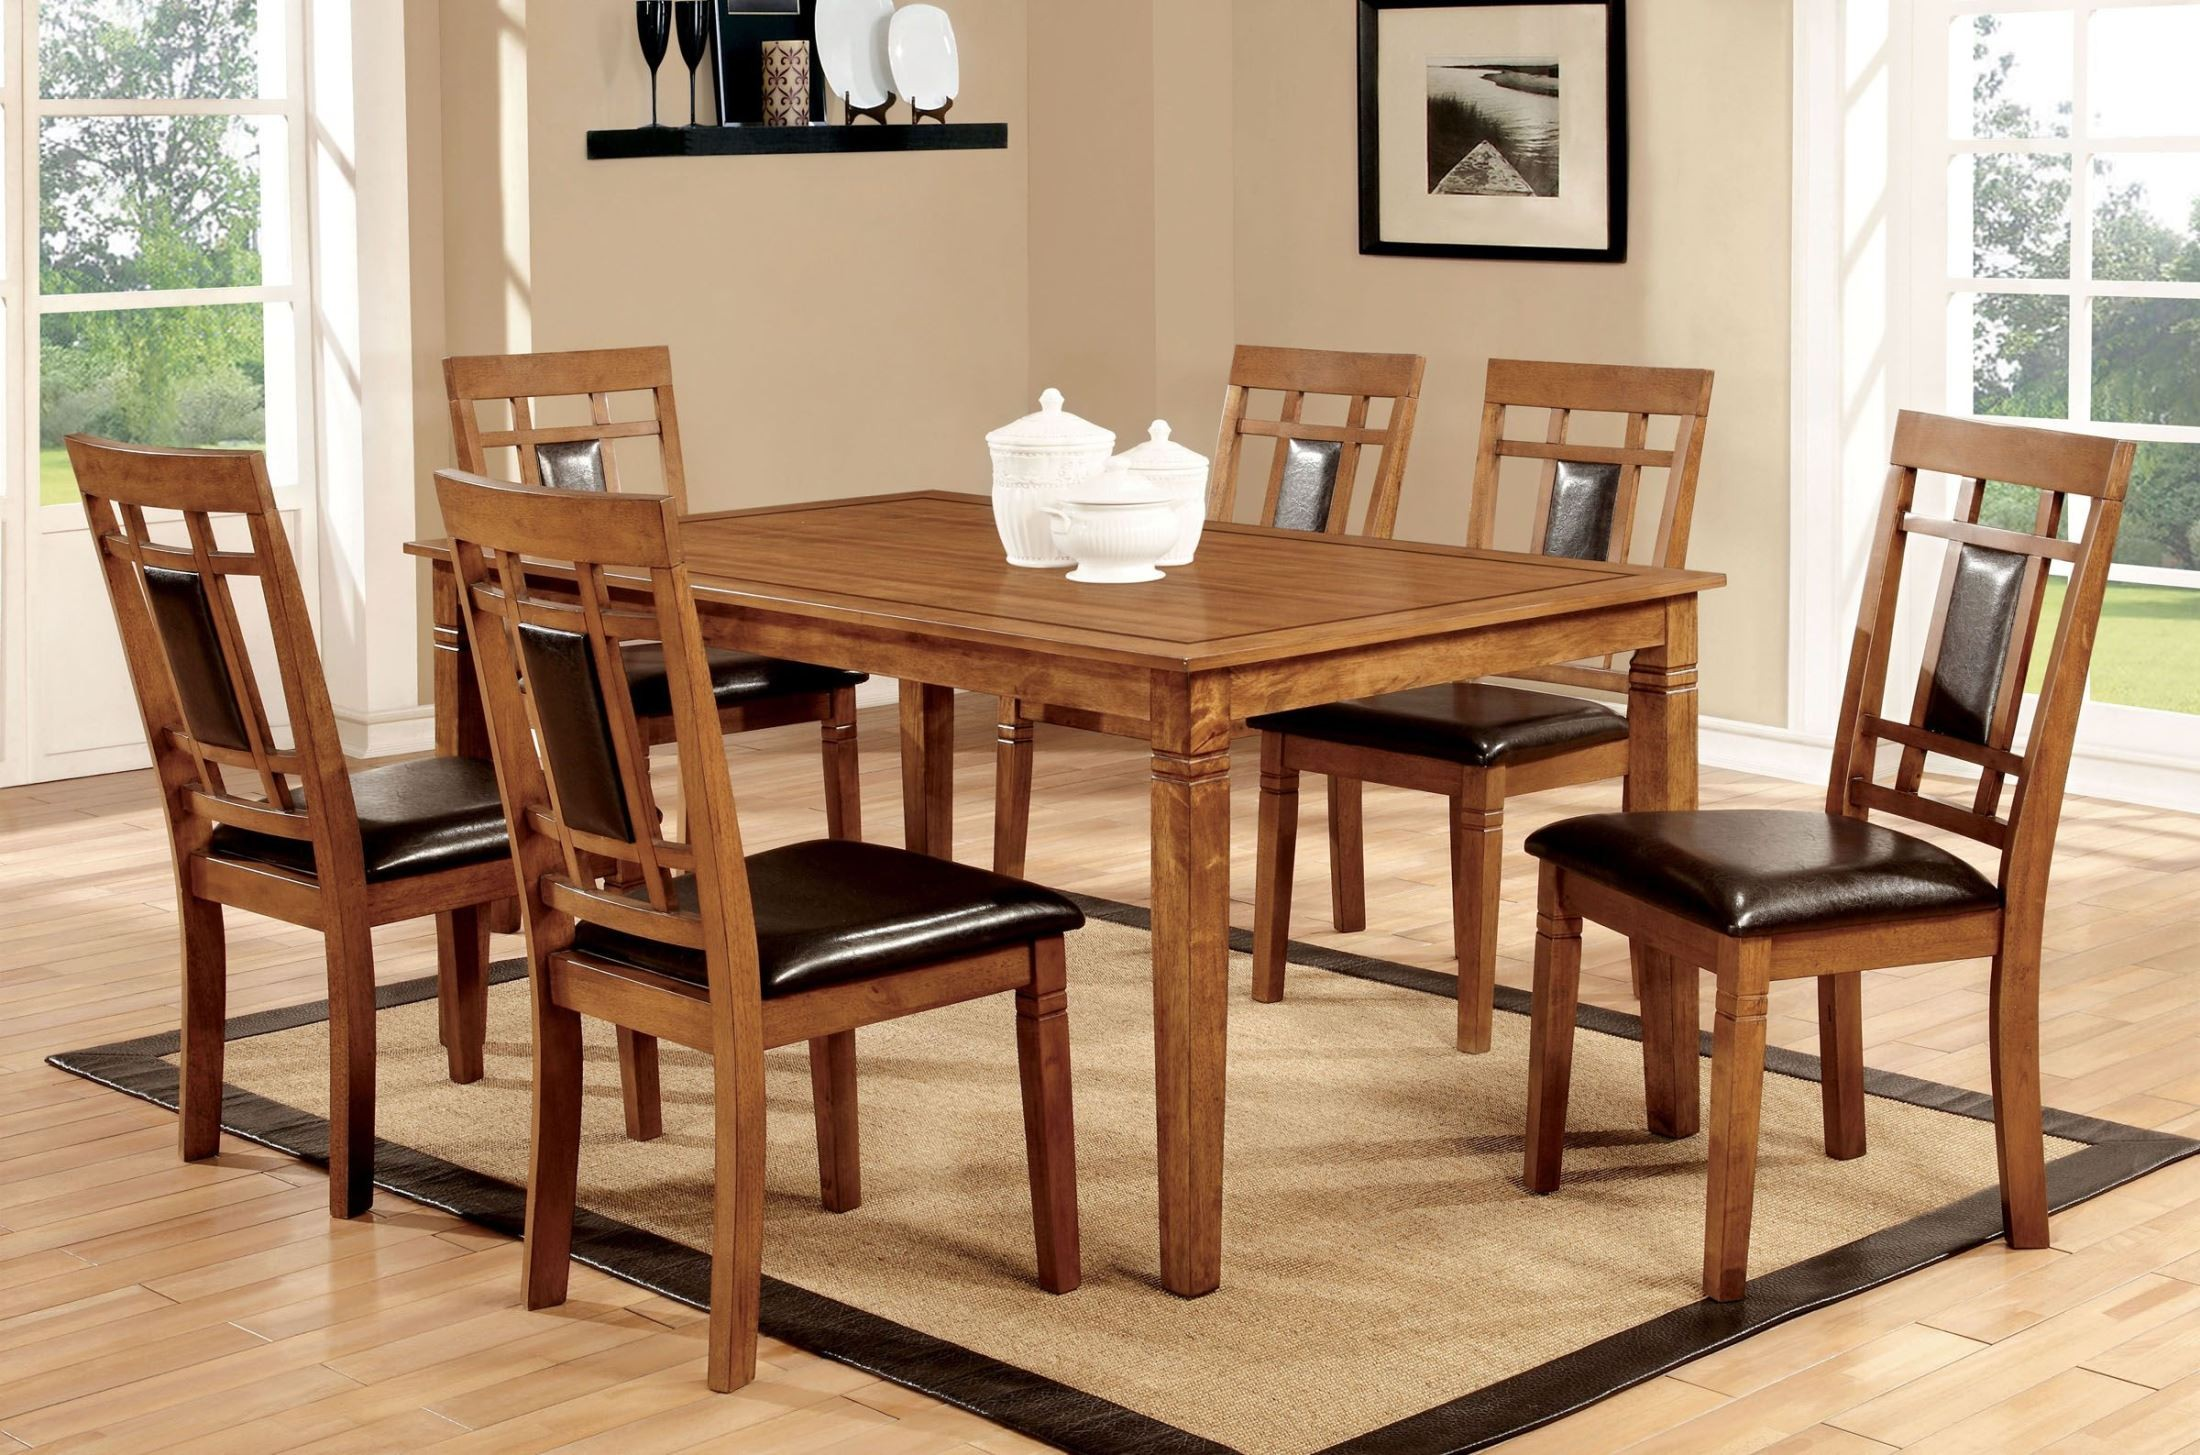 freeman i light oak 7 piece dining room set from furniture of america cm3502t 7pk coleman. Black Bedroom Furniture Sets. Home Design Ideas